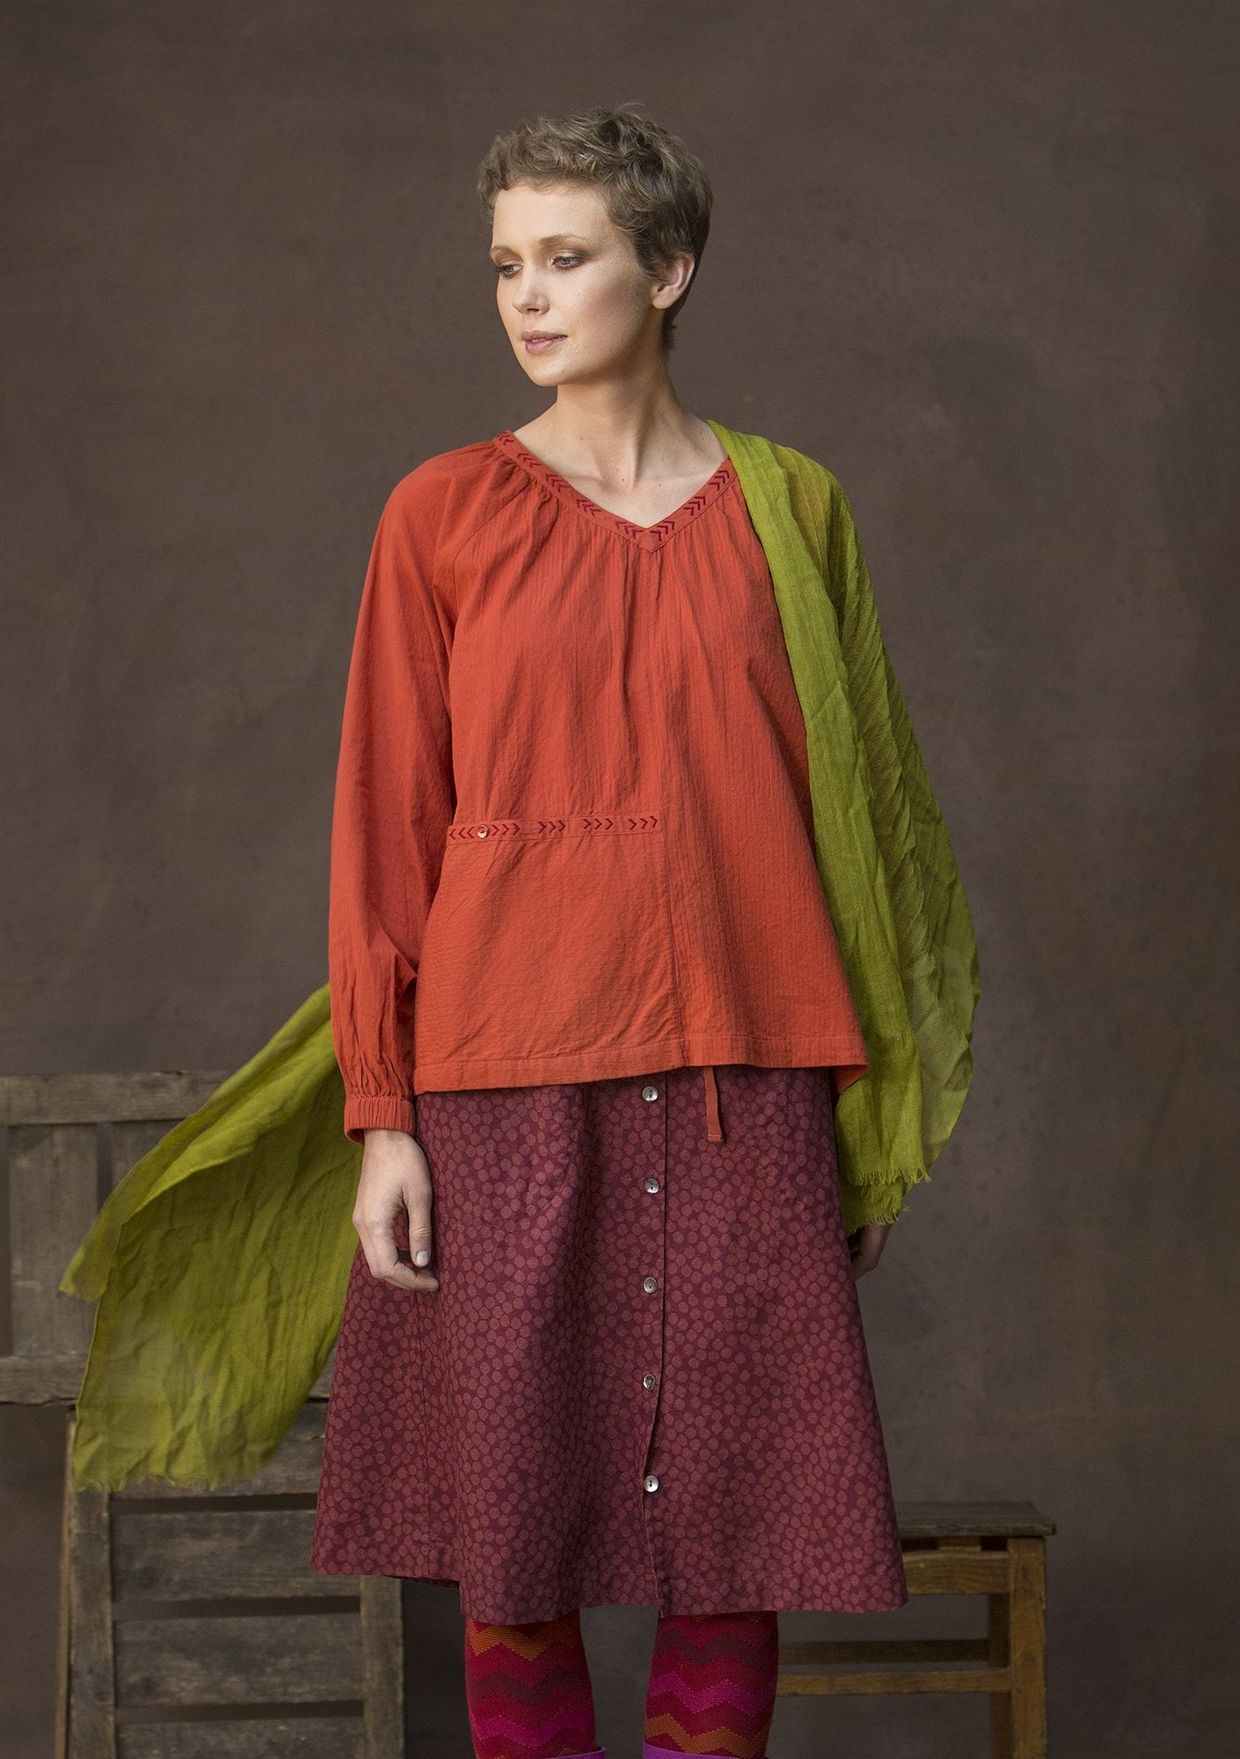 Airy blouse with a faint striped texture in the fabric and oh so comfortable, with plenty of room in this style. V-neck and delightful full-length puff sleeves. Notice the beautiful embroidery that adorns the pocket and the neckline!